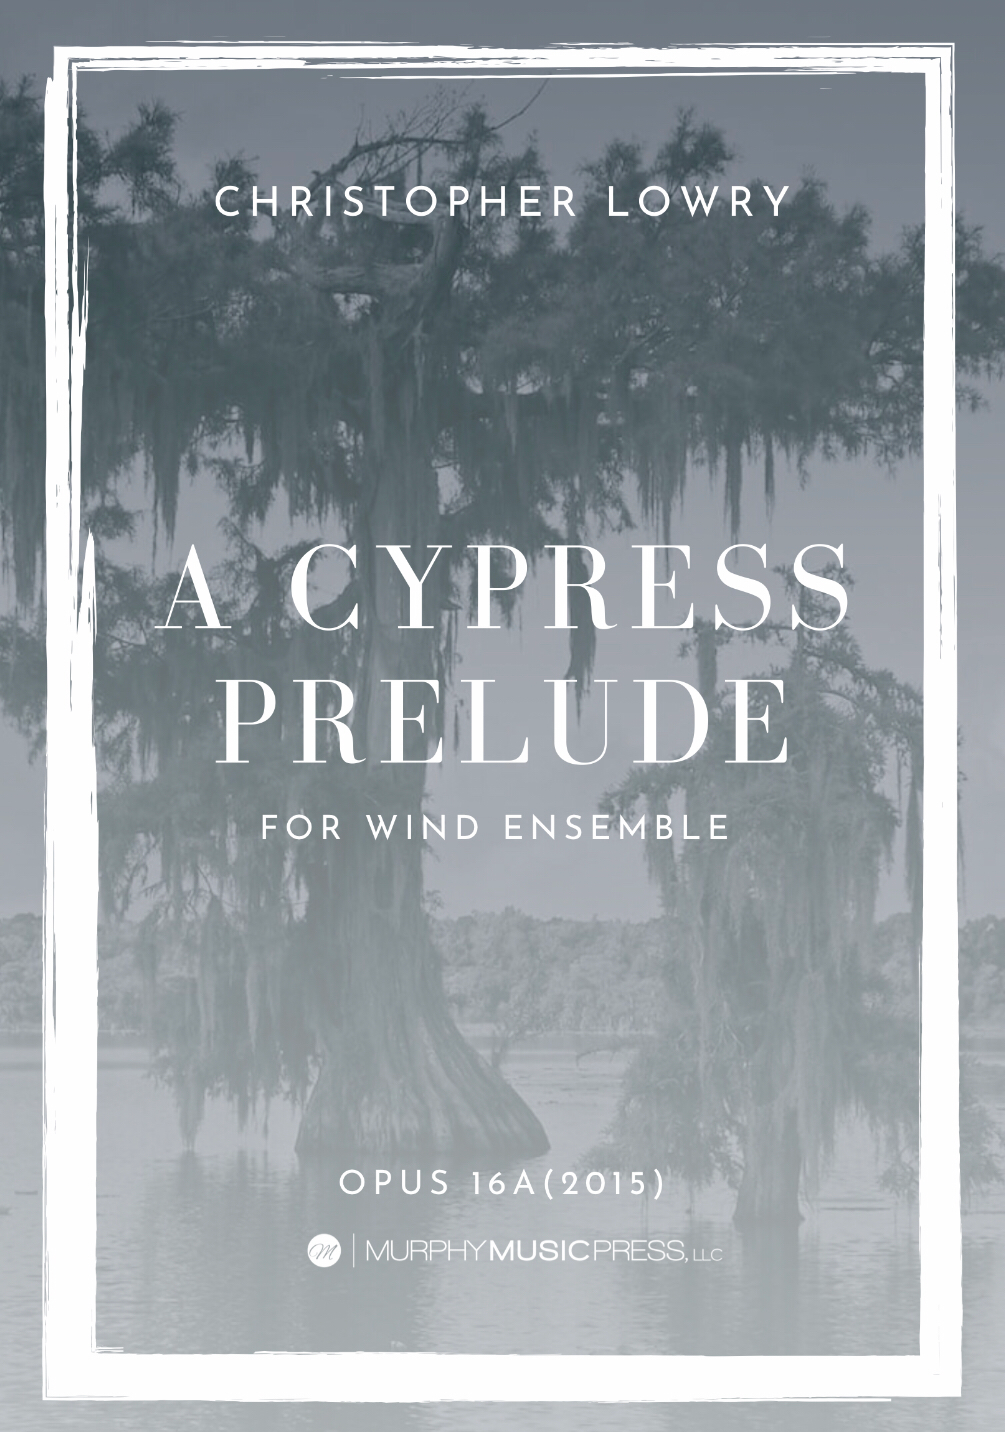 A Cypress Prelude  by Christopher Lowry